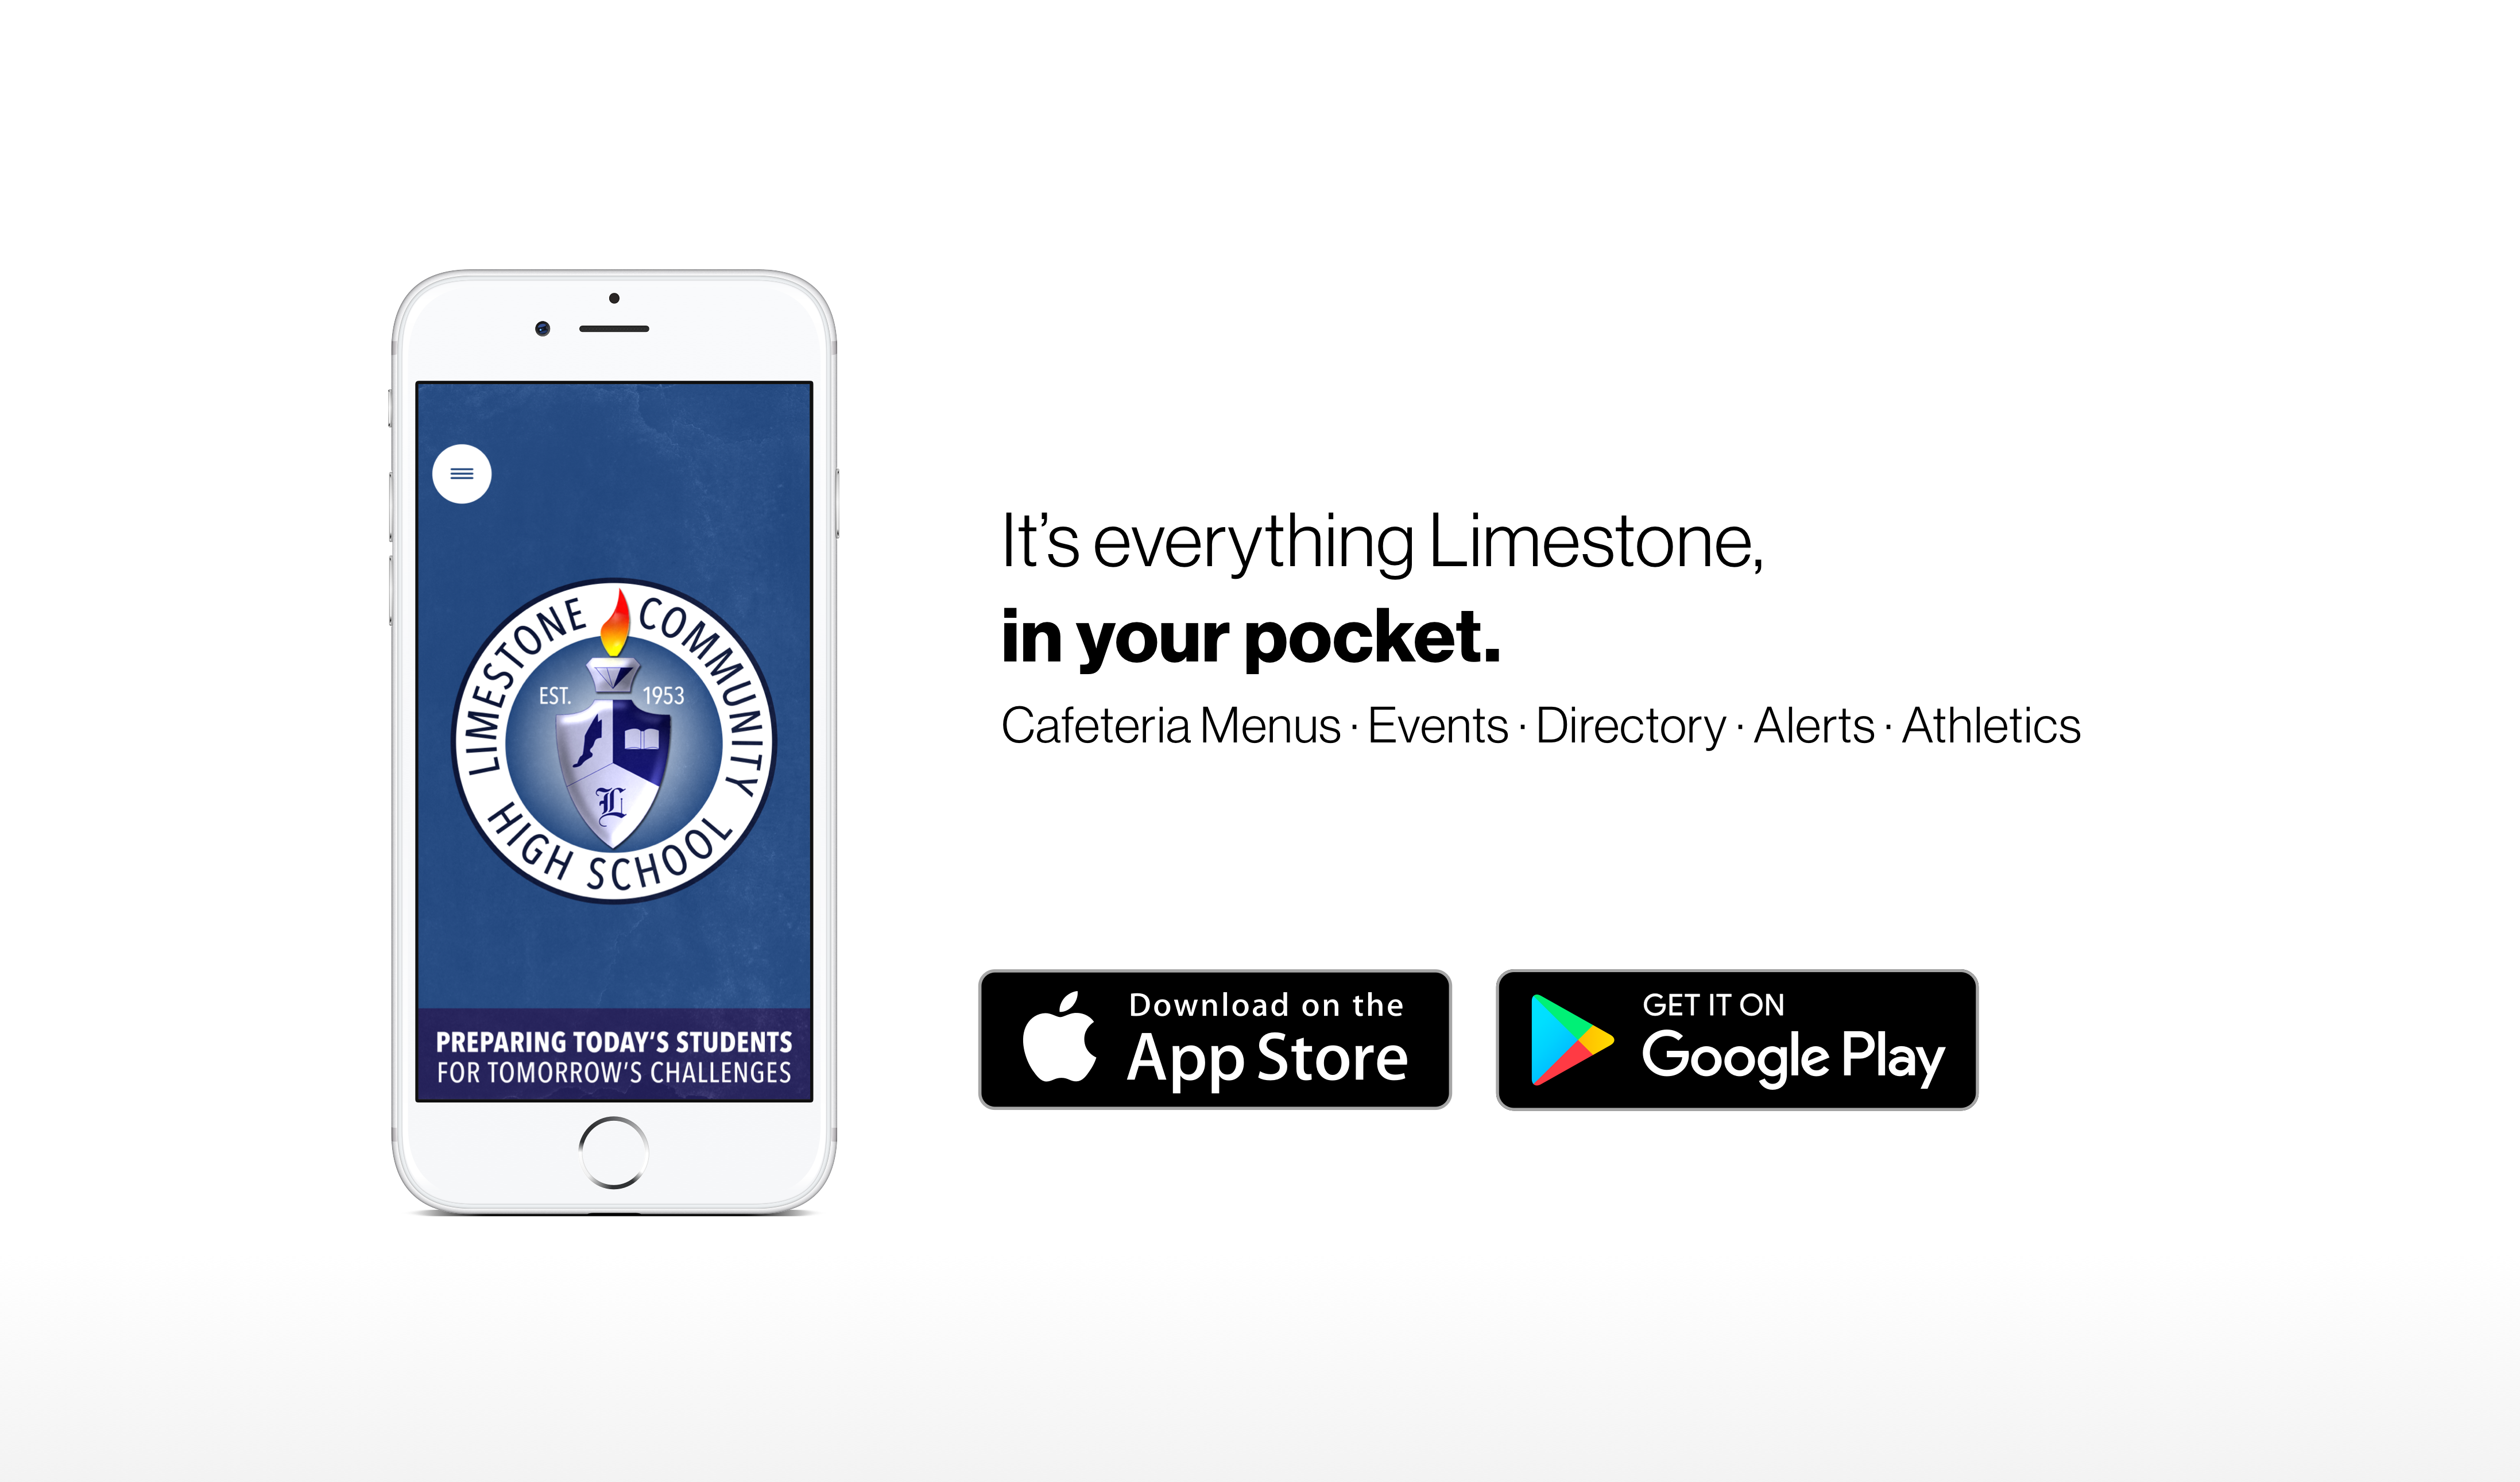 Everything Limestone, in your pocket.